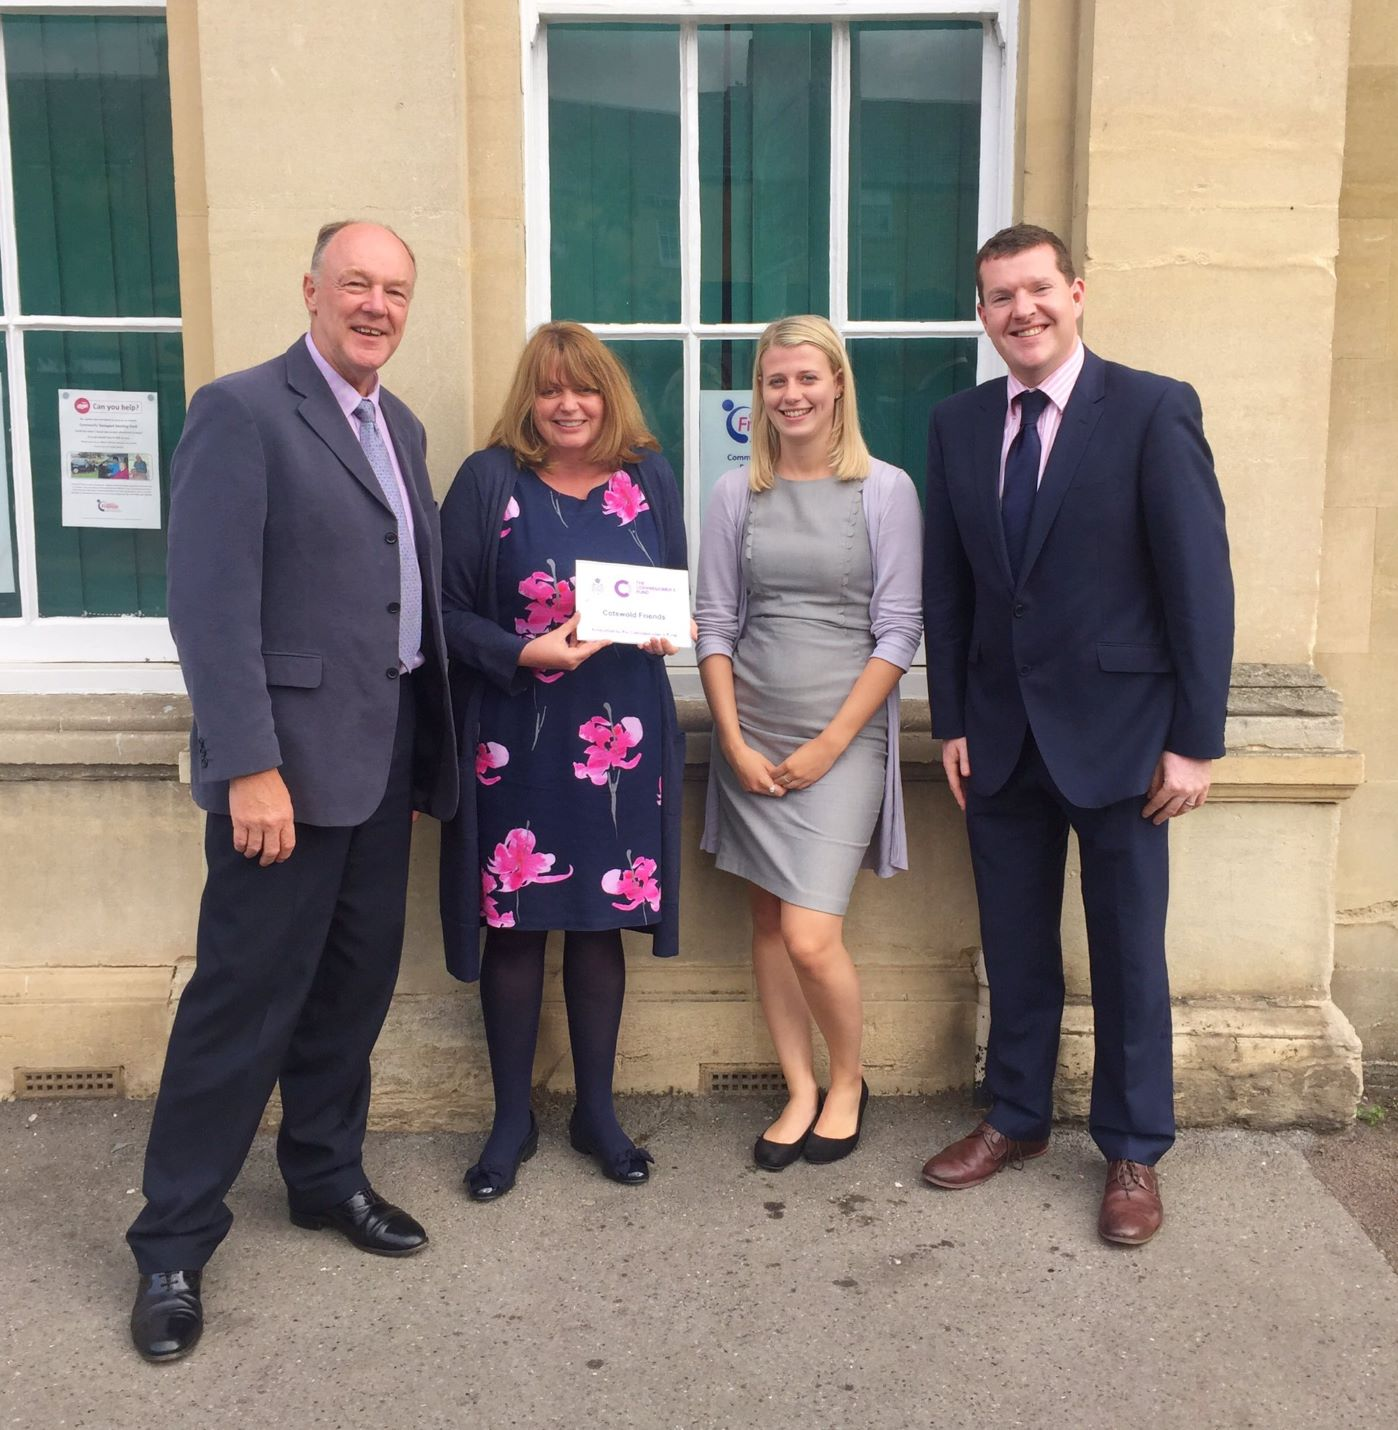 PCC Martin Surl's Ongoing Support for Cotswold Friends